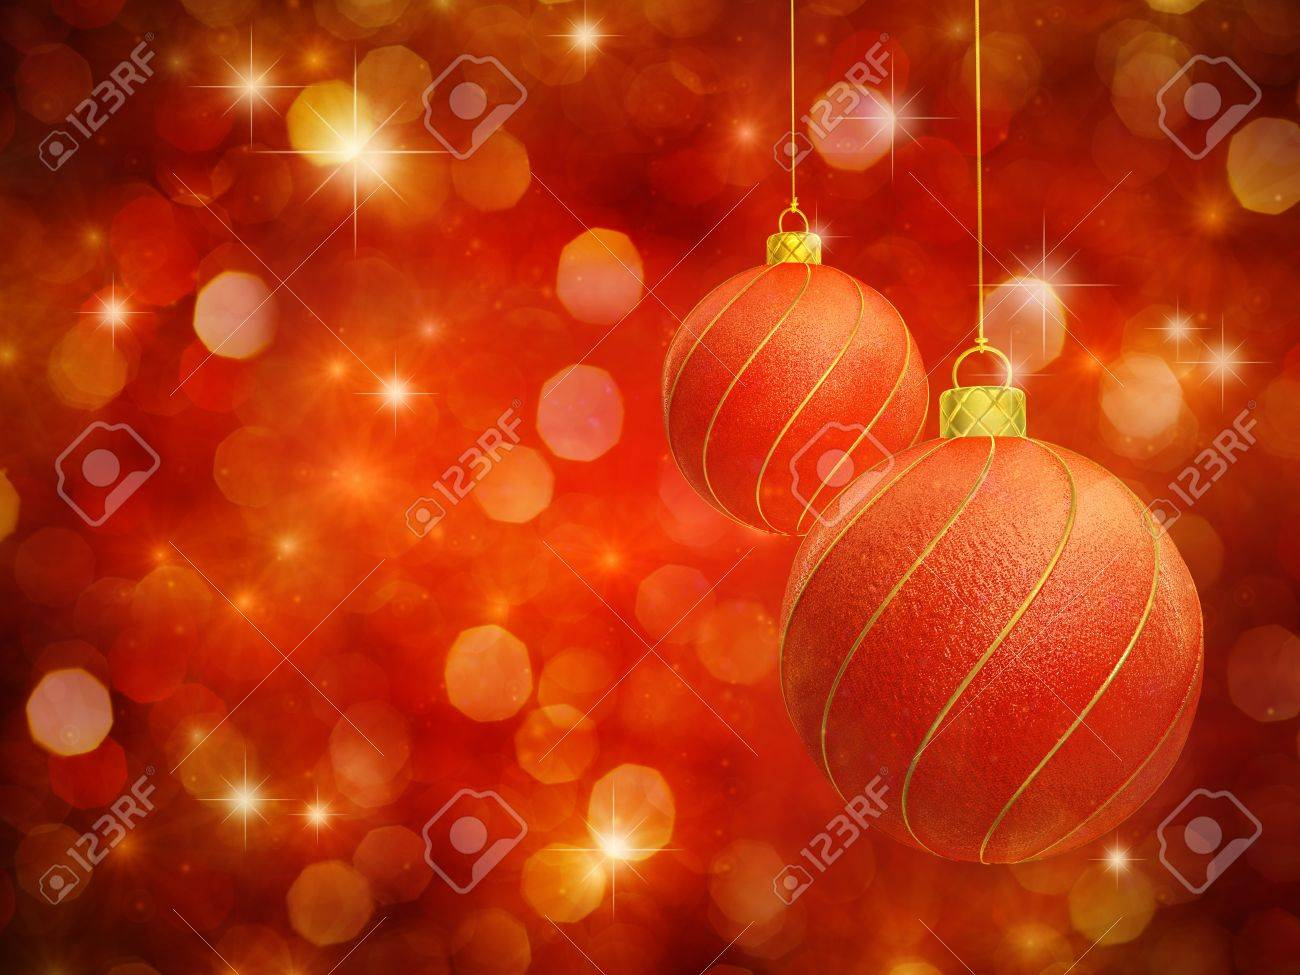 Christmas baubles on red sparkly background Stock Photo - 11174958